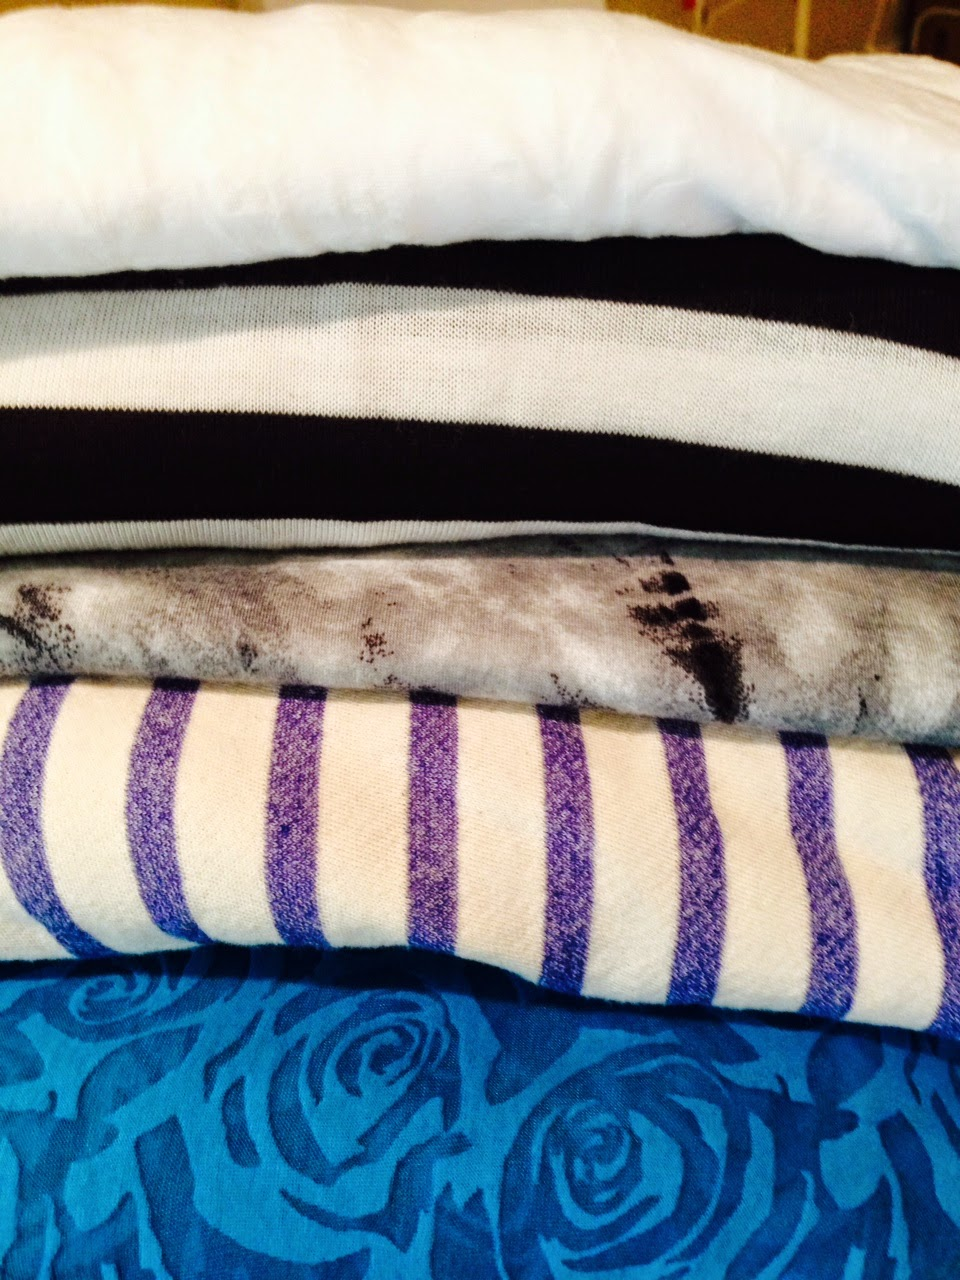 From Textiles (top to bottom): white burnout, black white striped knit, gray/black tie dye knit; terry striped knit; turquoise burnout